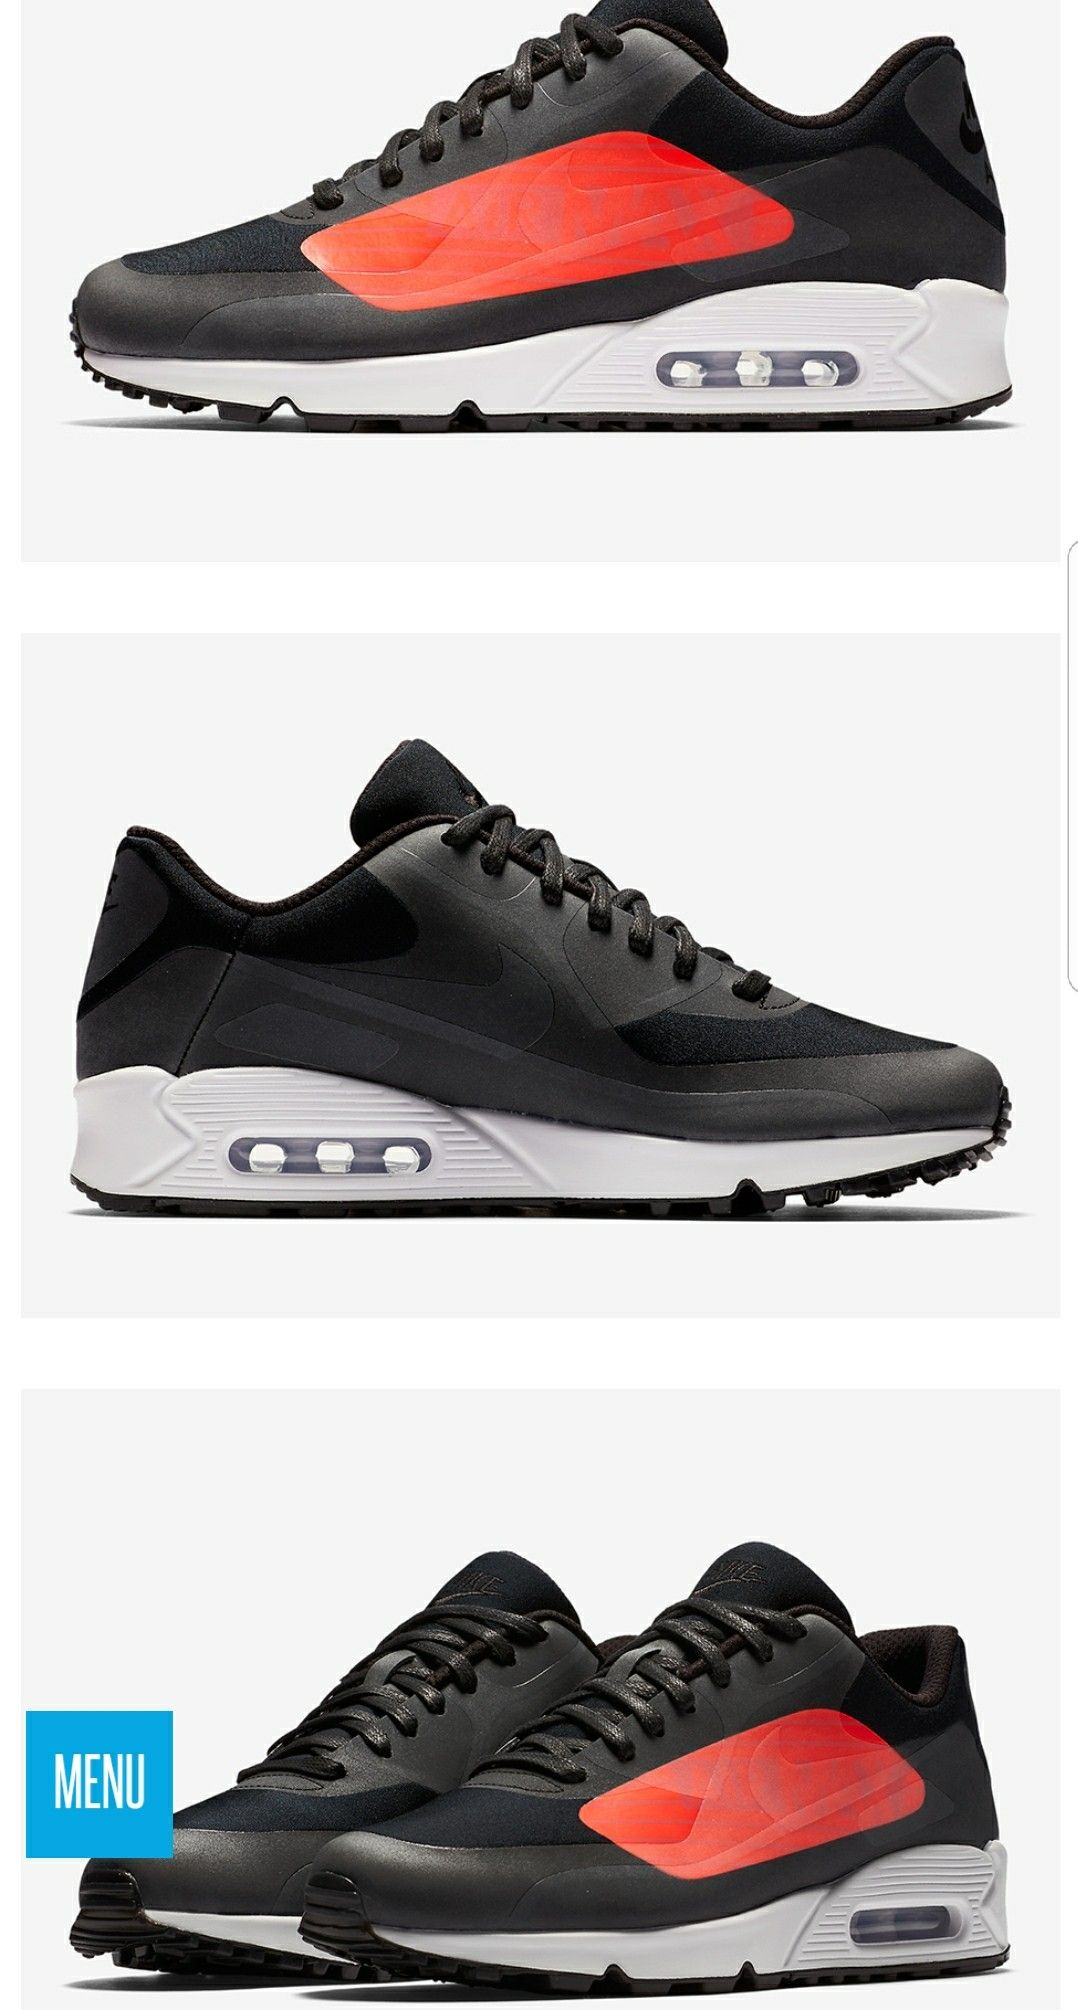 best service 18927 2389f Nike Air Max 90 NS GPX | Sneakers /Boots in 2019 | Sneakers nike ...